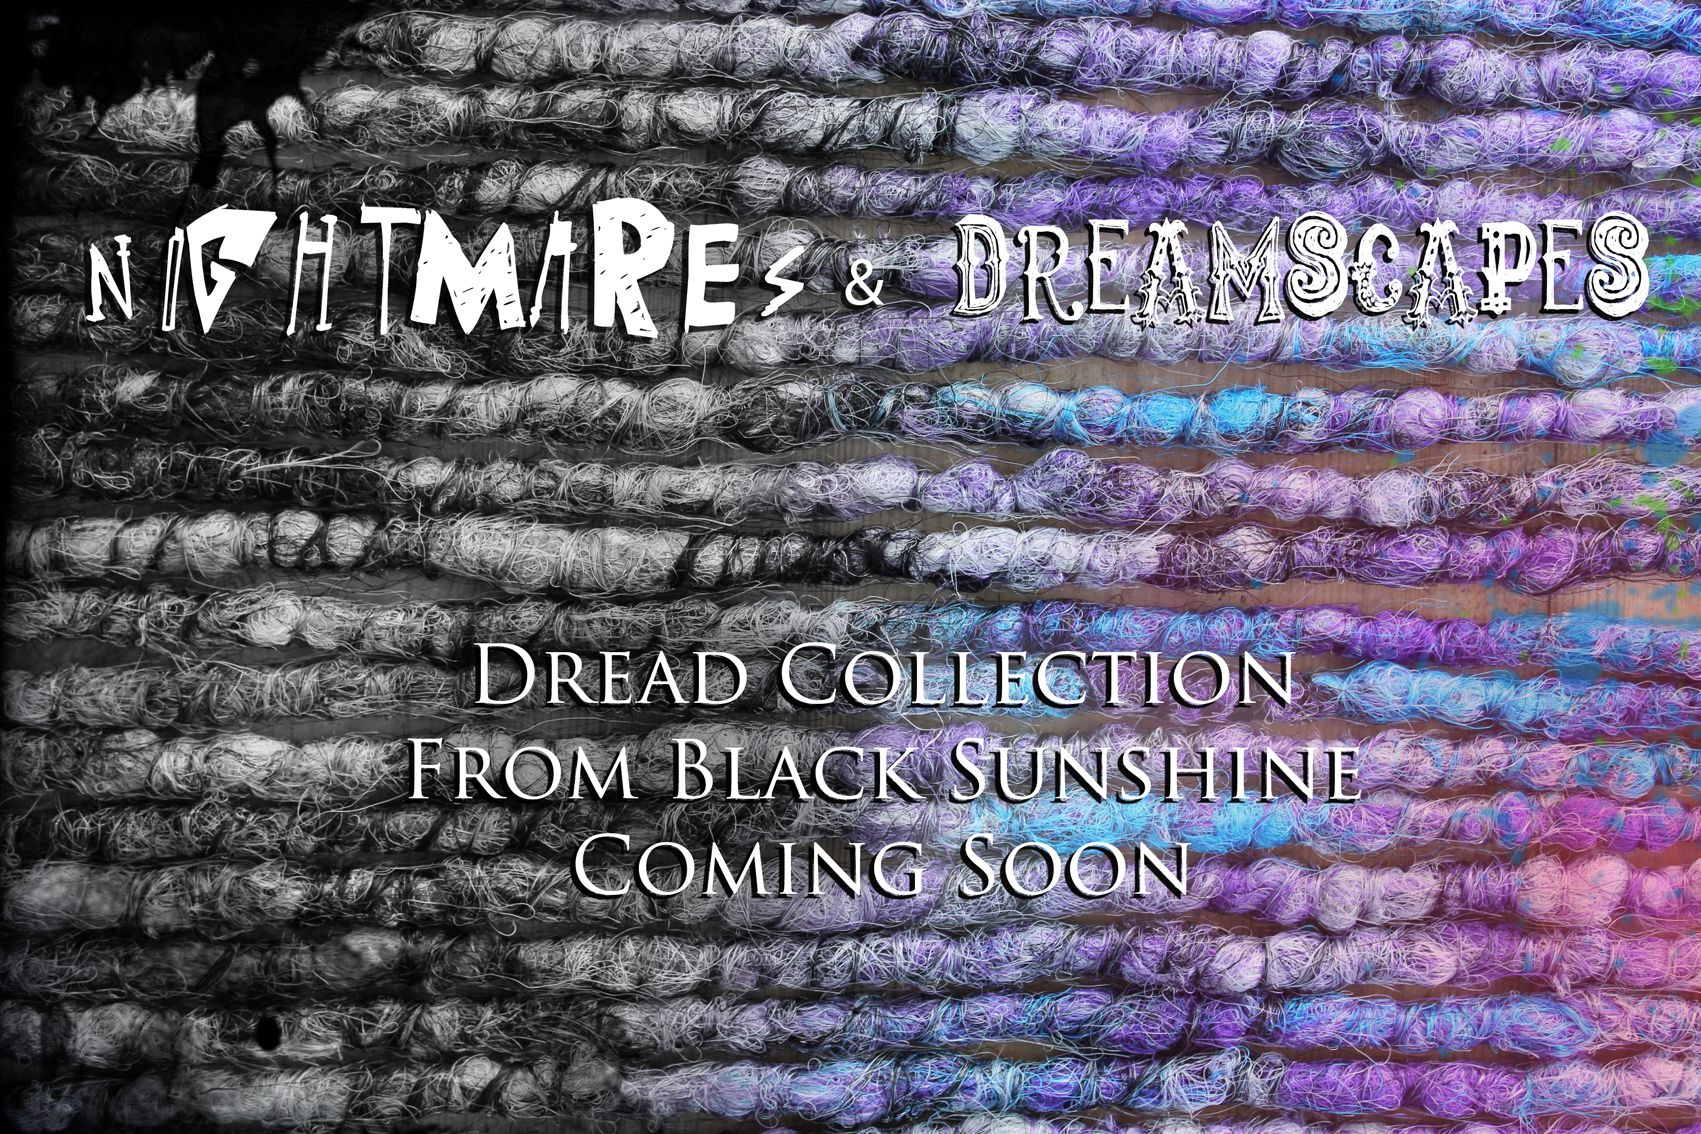 New dread collection coming from Black Sunshine #syntheticdreads